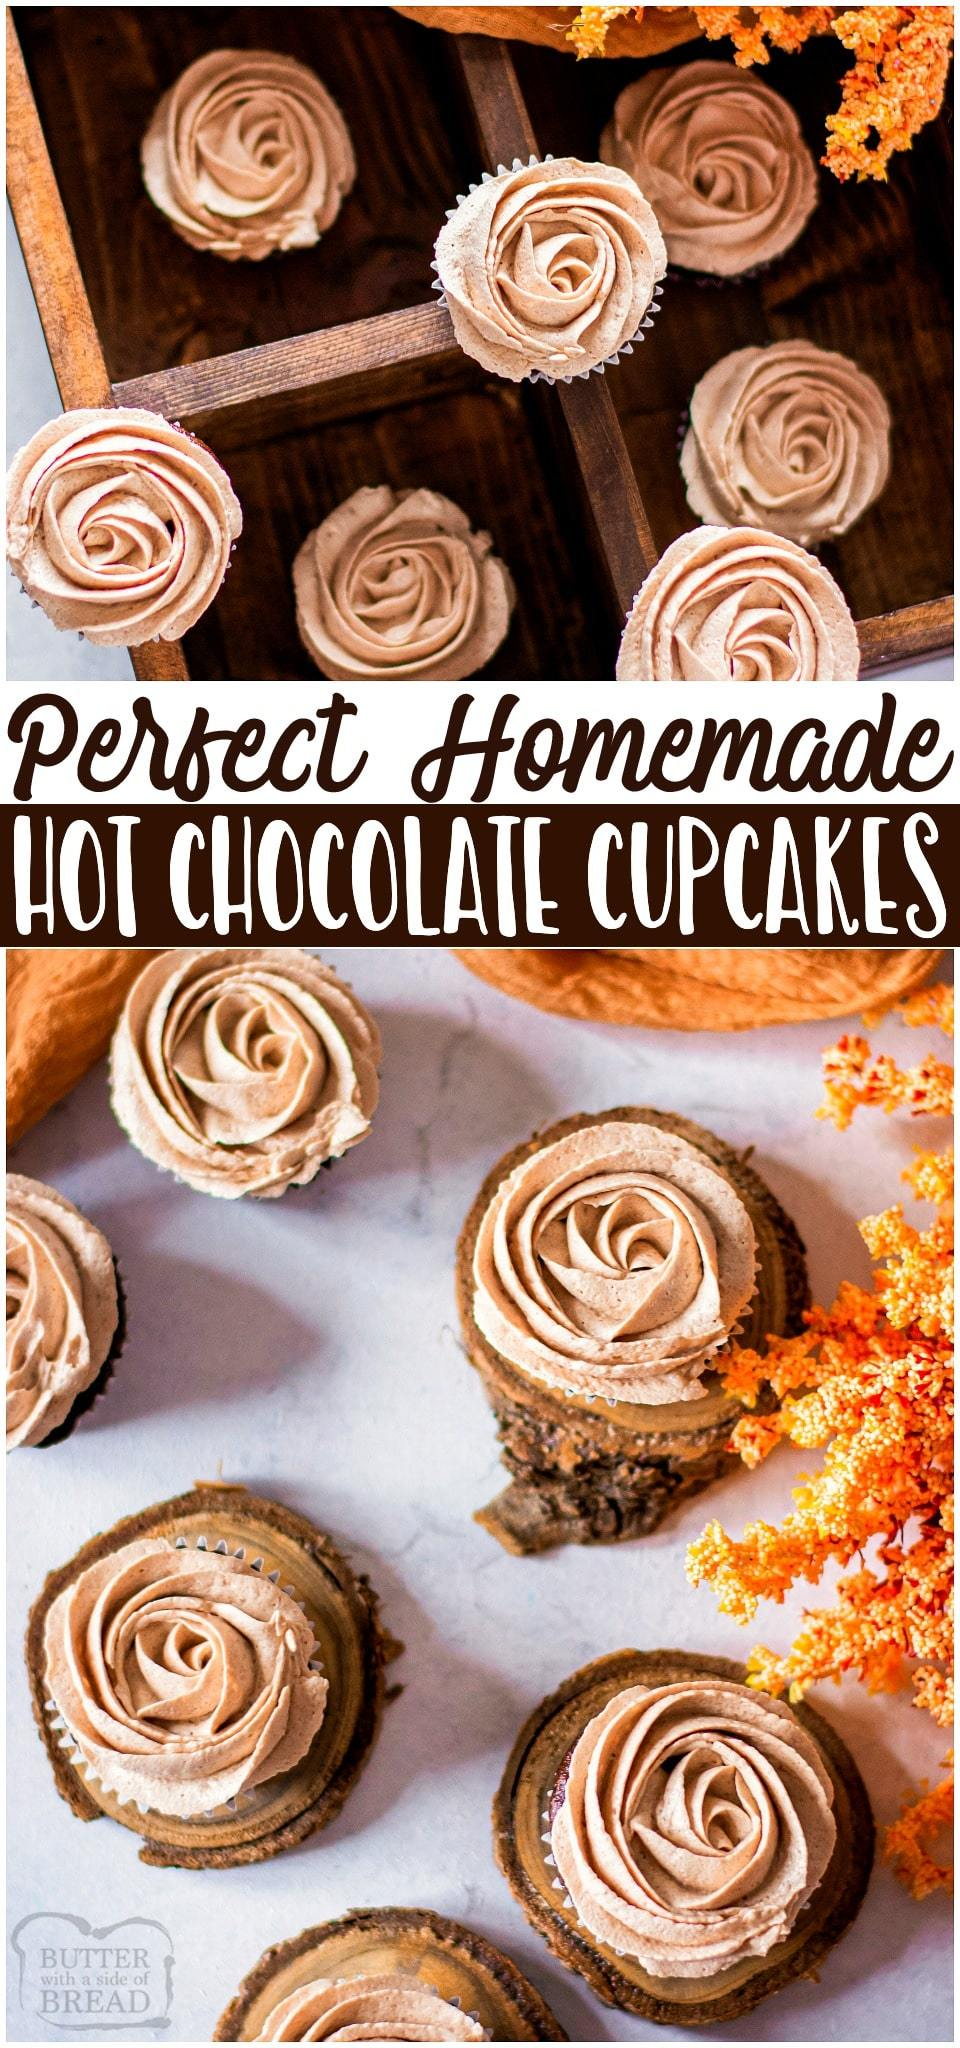 Hot chocolate cupcakes are soft chocolate cupcakes topped with hot chocolate buttercream for an indulgent & delicious chocolatey dessert. #chocolate #hotchocolate #cupcakes #cake #dessert #baking #recipe from BUTTER WITH A SIDE OF BREAD